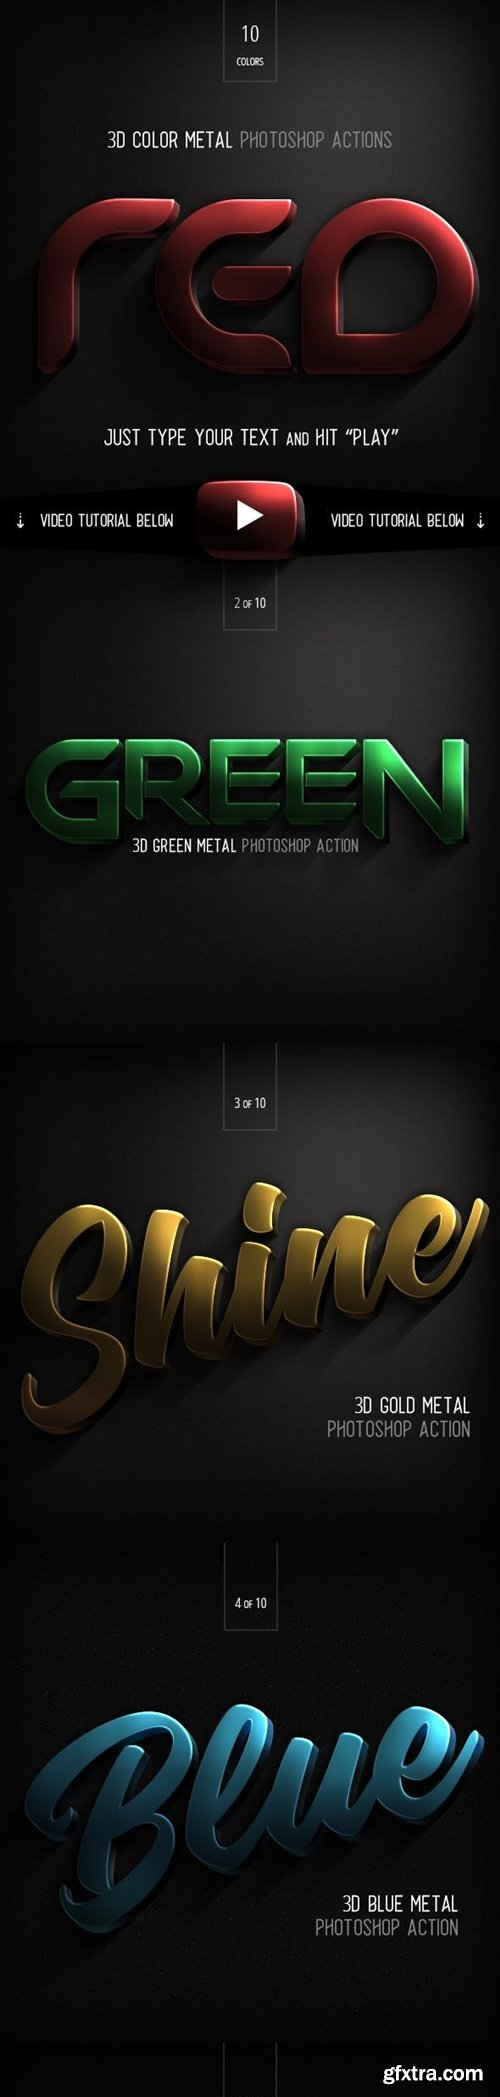 Graphicriver - 3D Color Metal - Photoshop Action 22968543